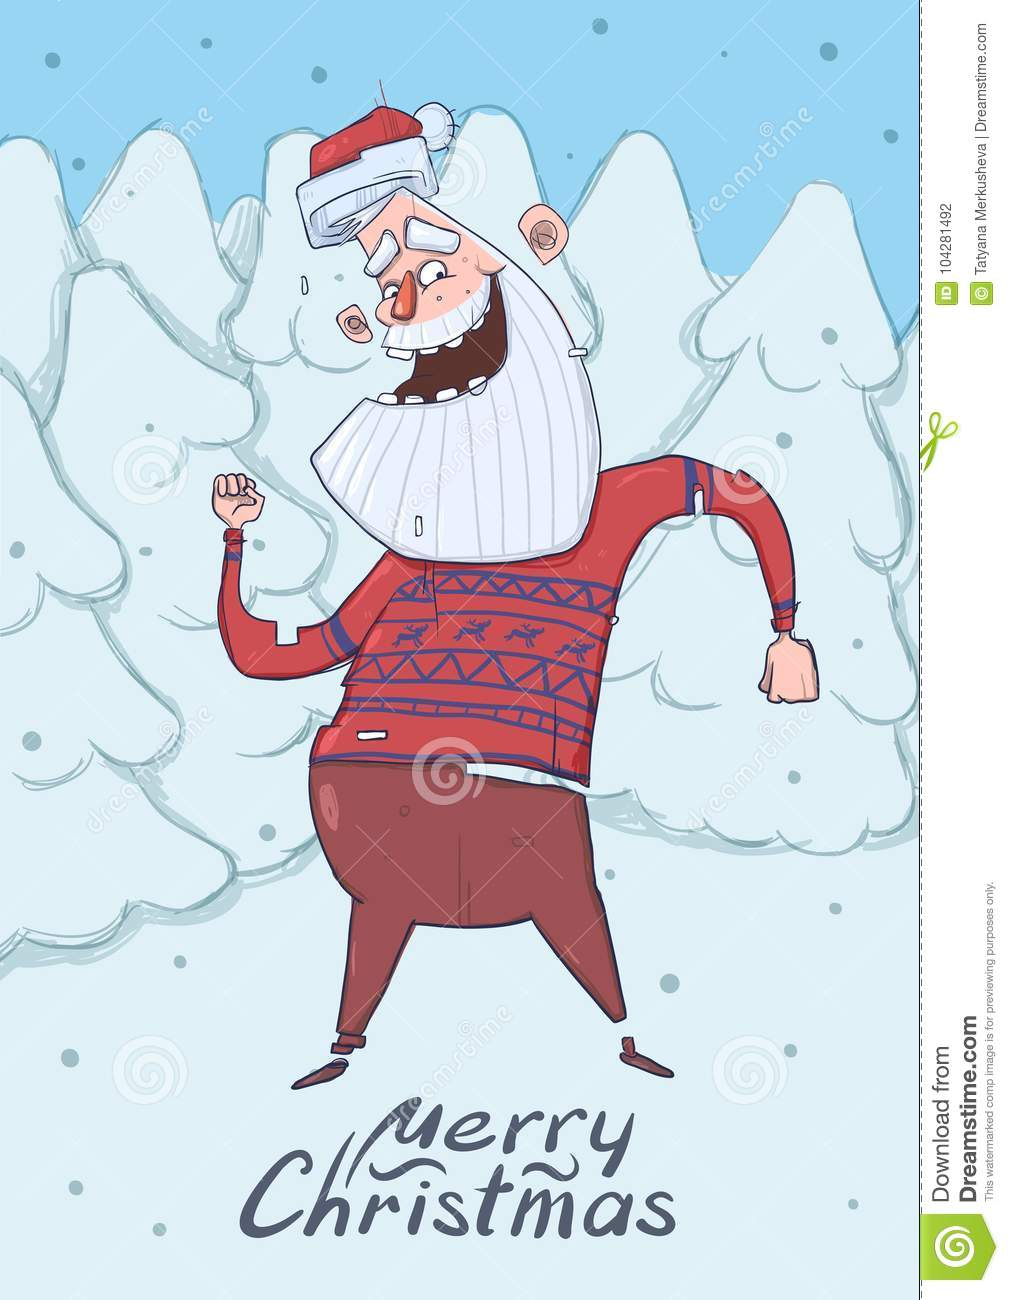 Christmas Card Of Funny Santa Claus Dancing In The Forest. Smiling ...